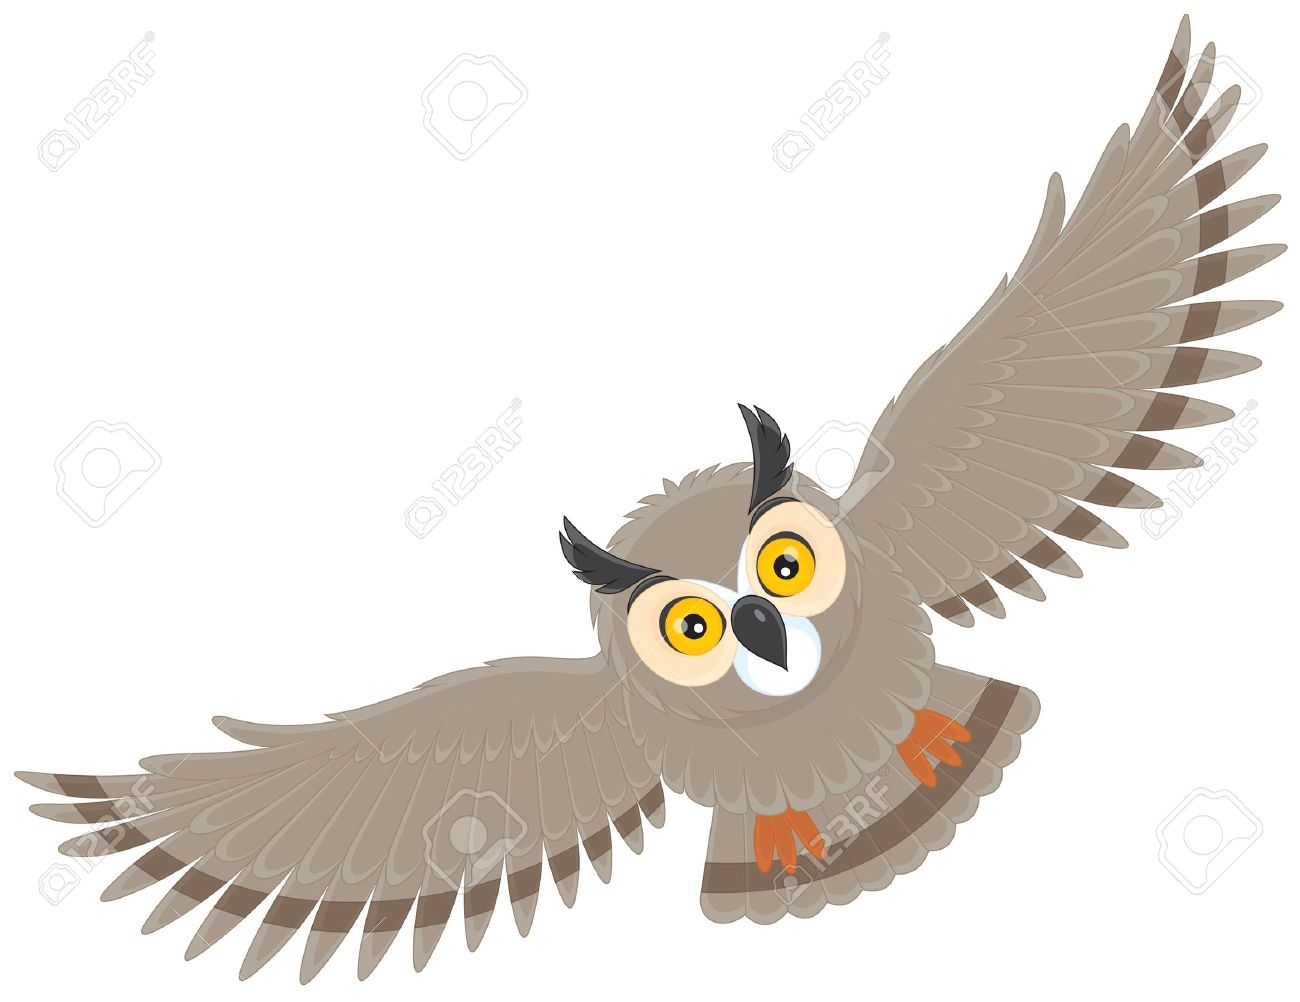 Flying owl clipart 3 » Clipart Station.